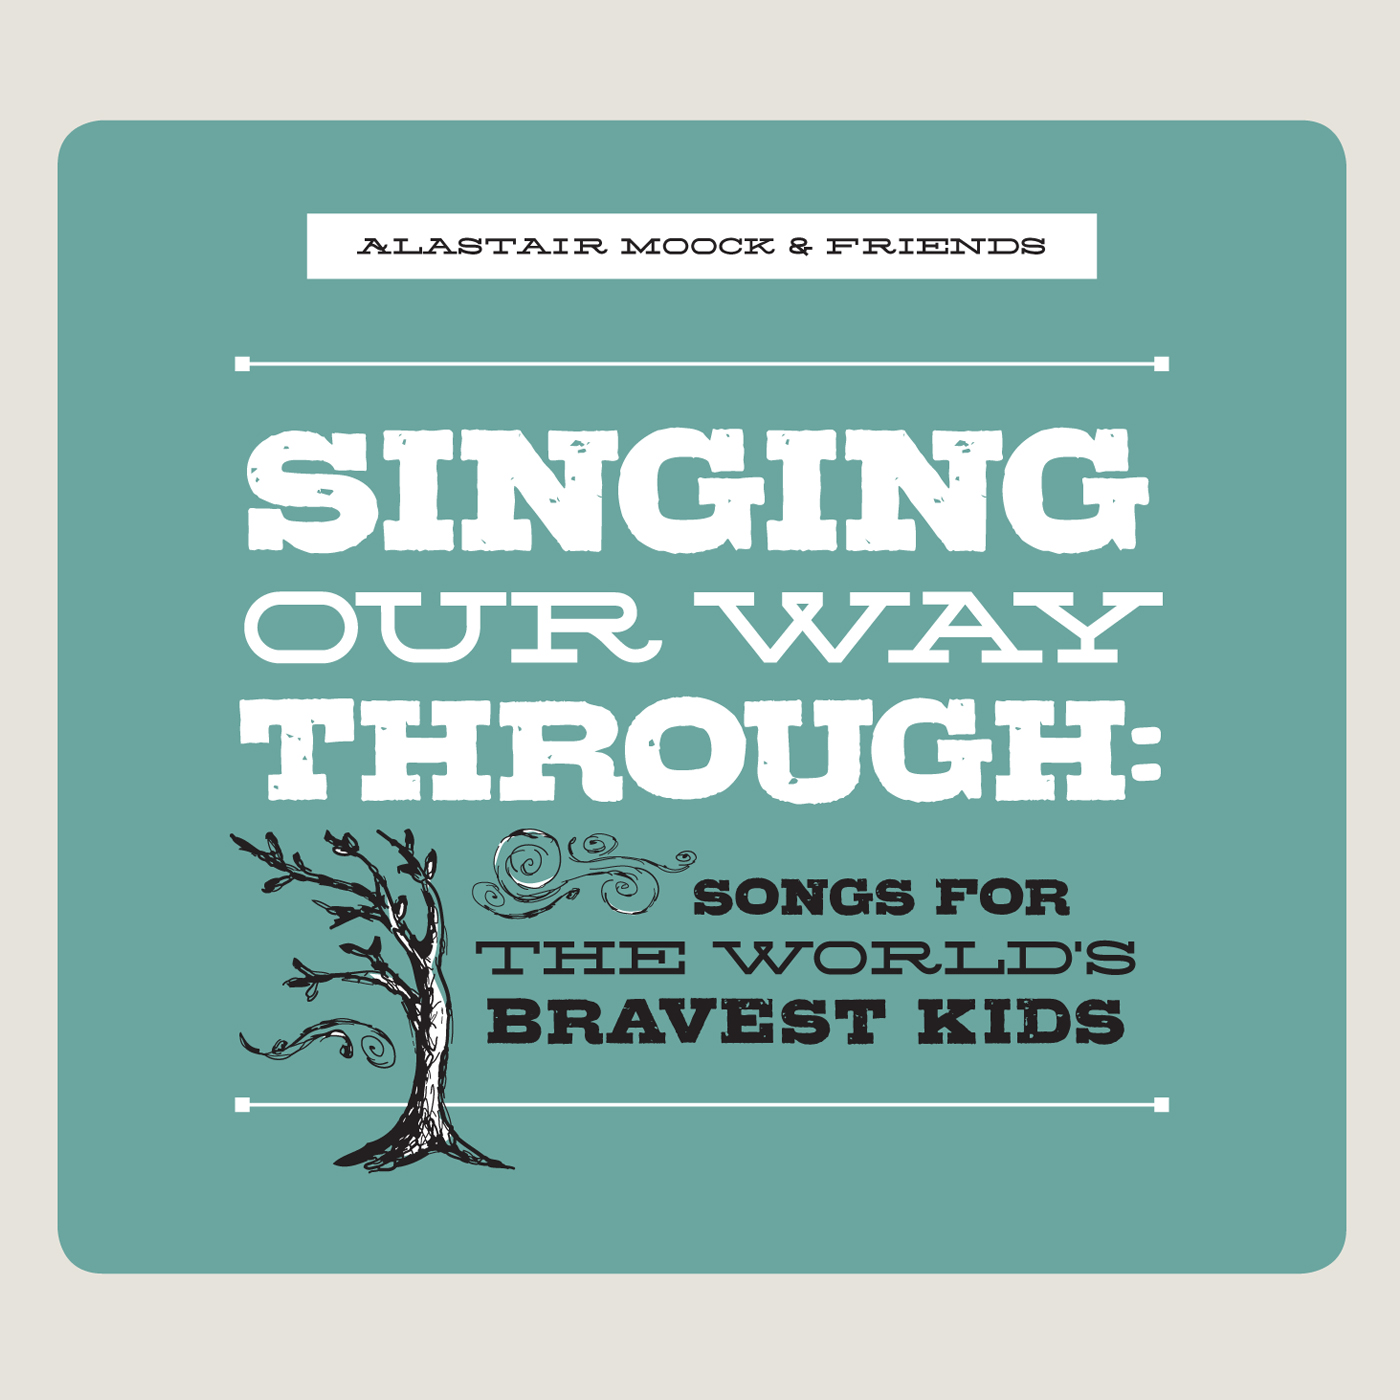 Singing Our Way Through: Songs for the World's Bravest Kids